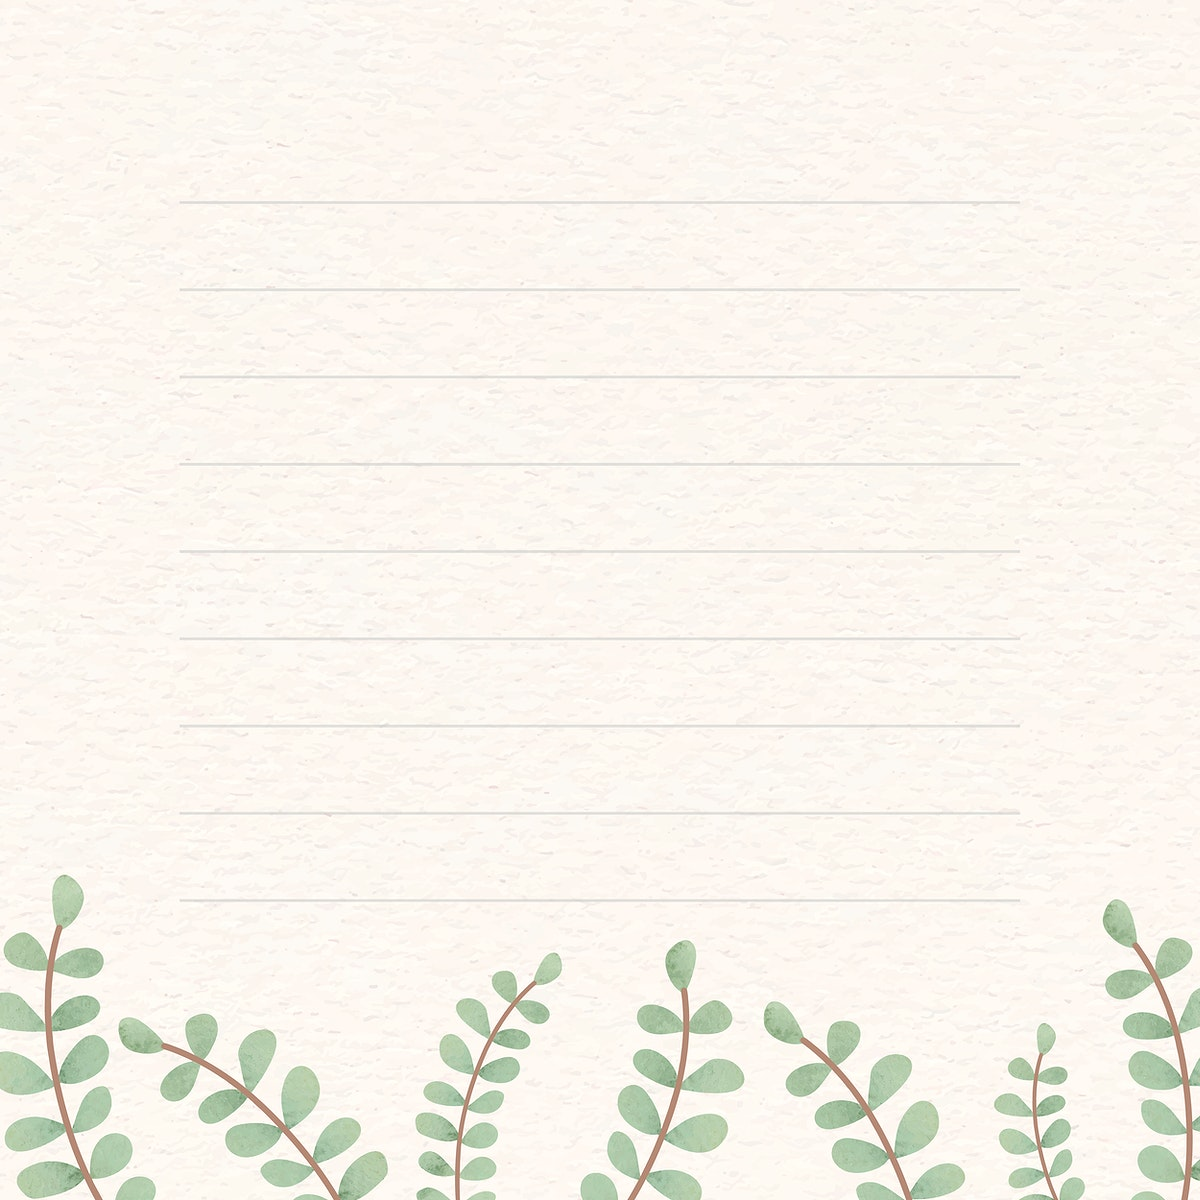 Leafy patterned note background vector